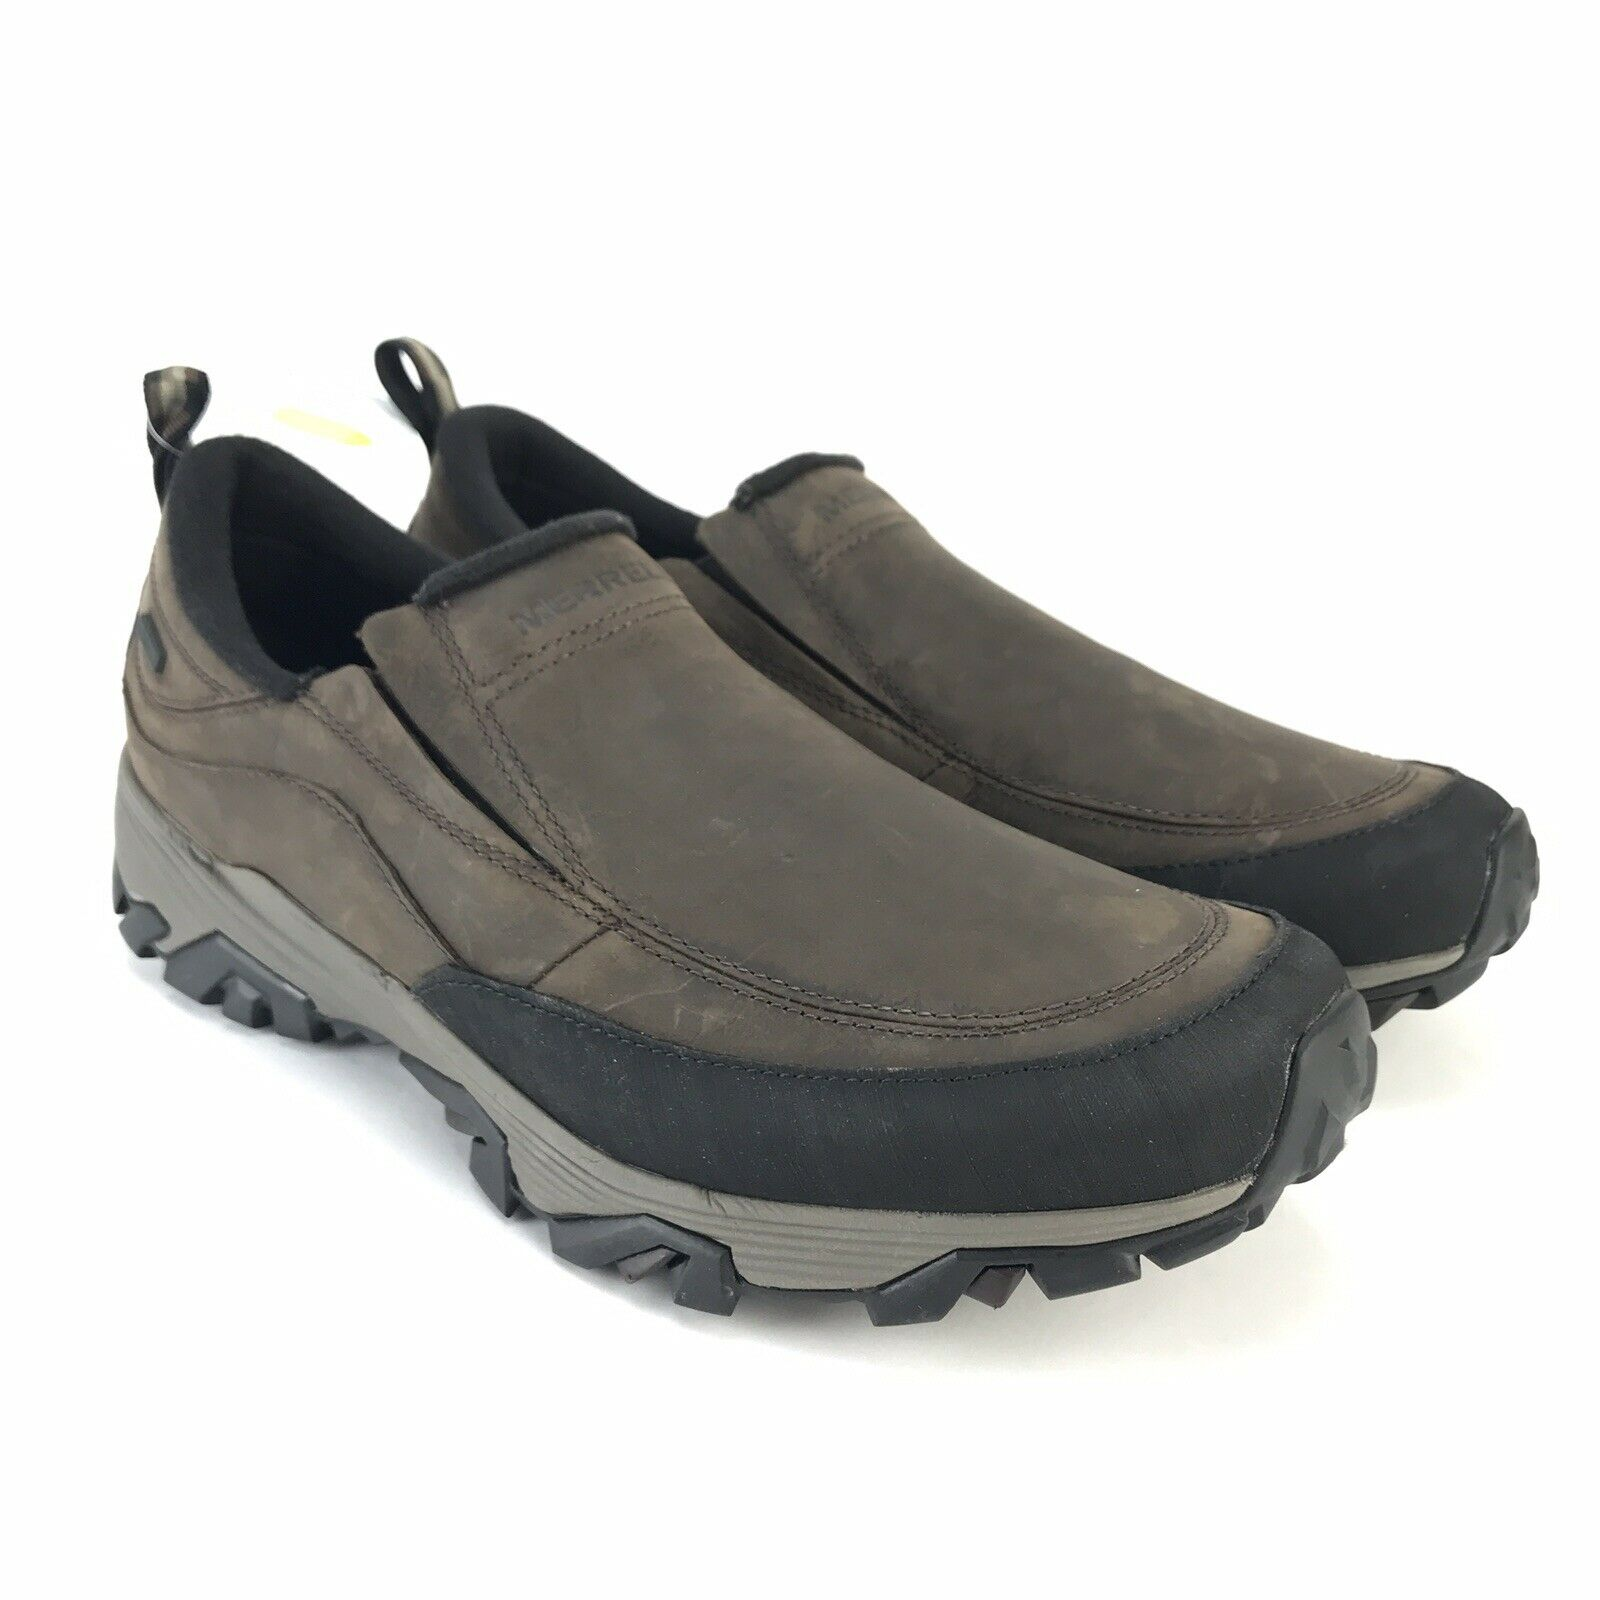 Homme Merrell coldpack Ice + MOC Isotherme Imperméable À Enfiler chaussures Taille 11.5